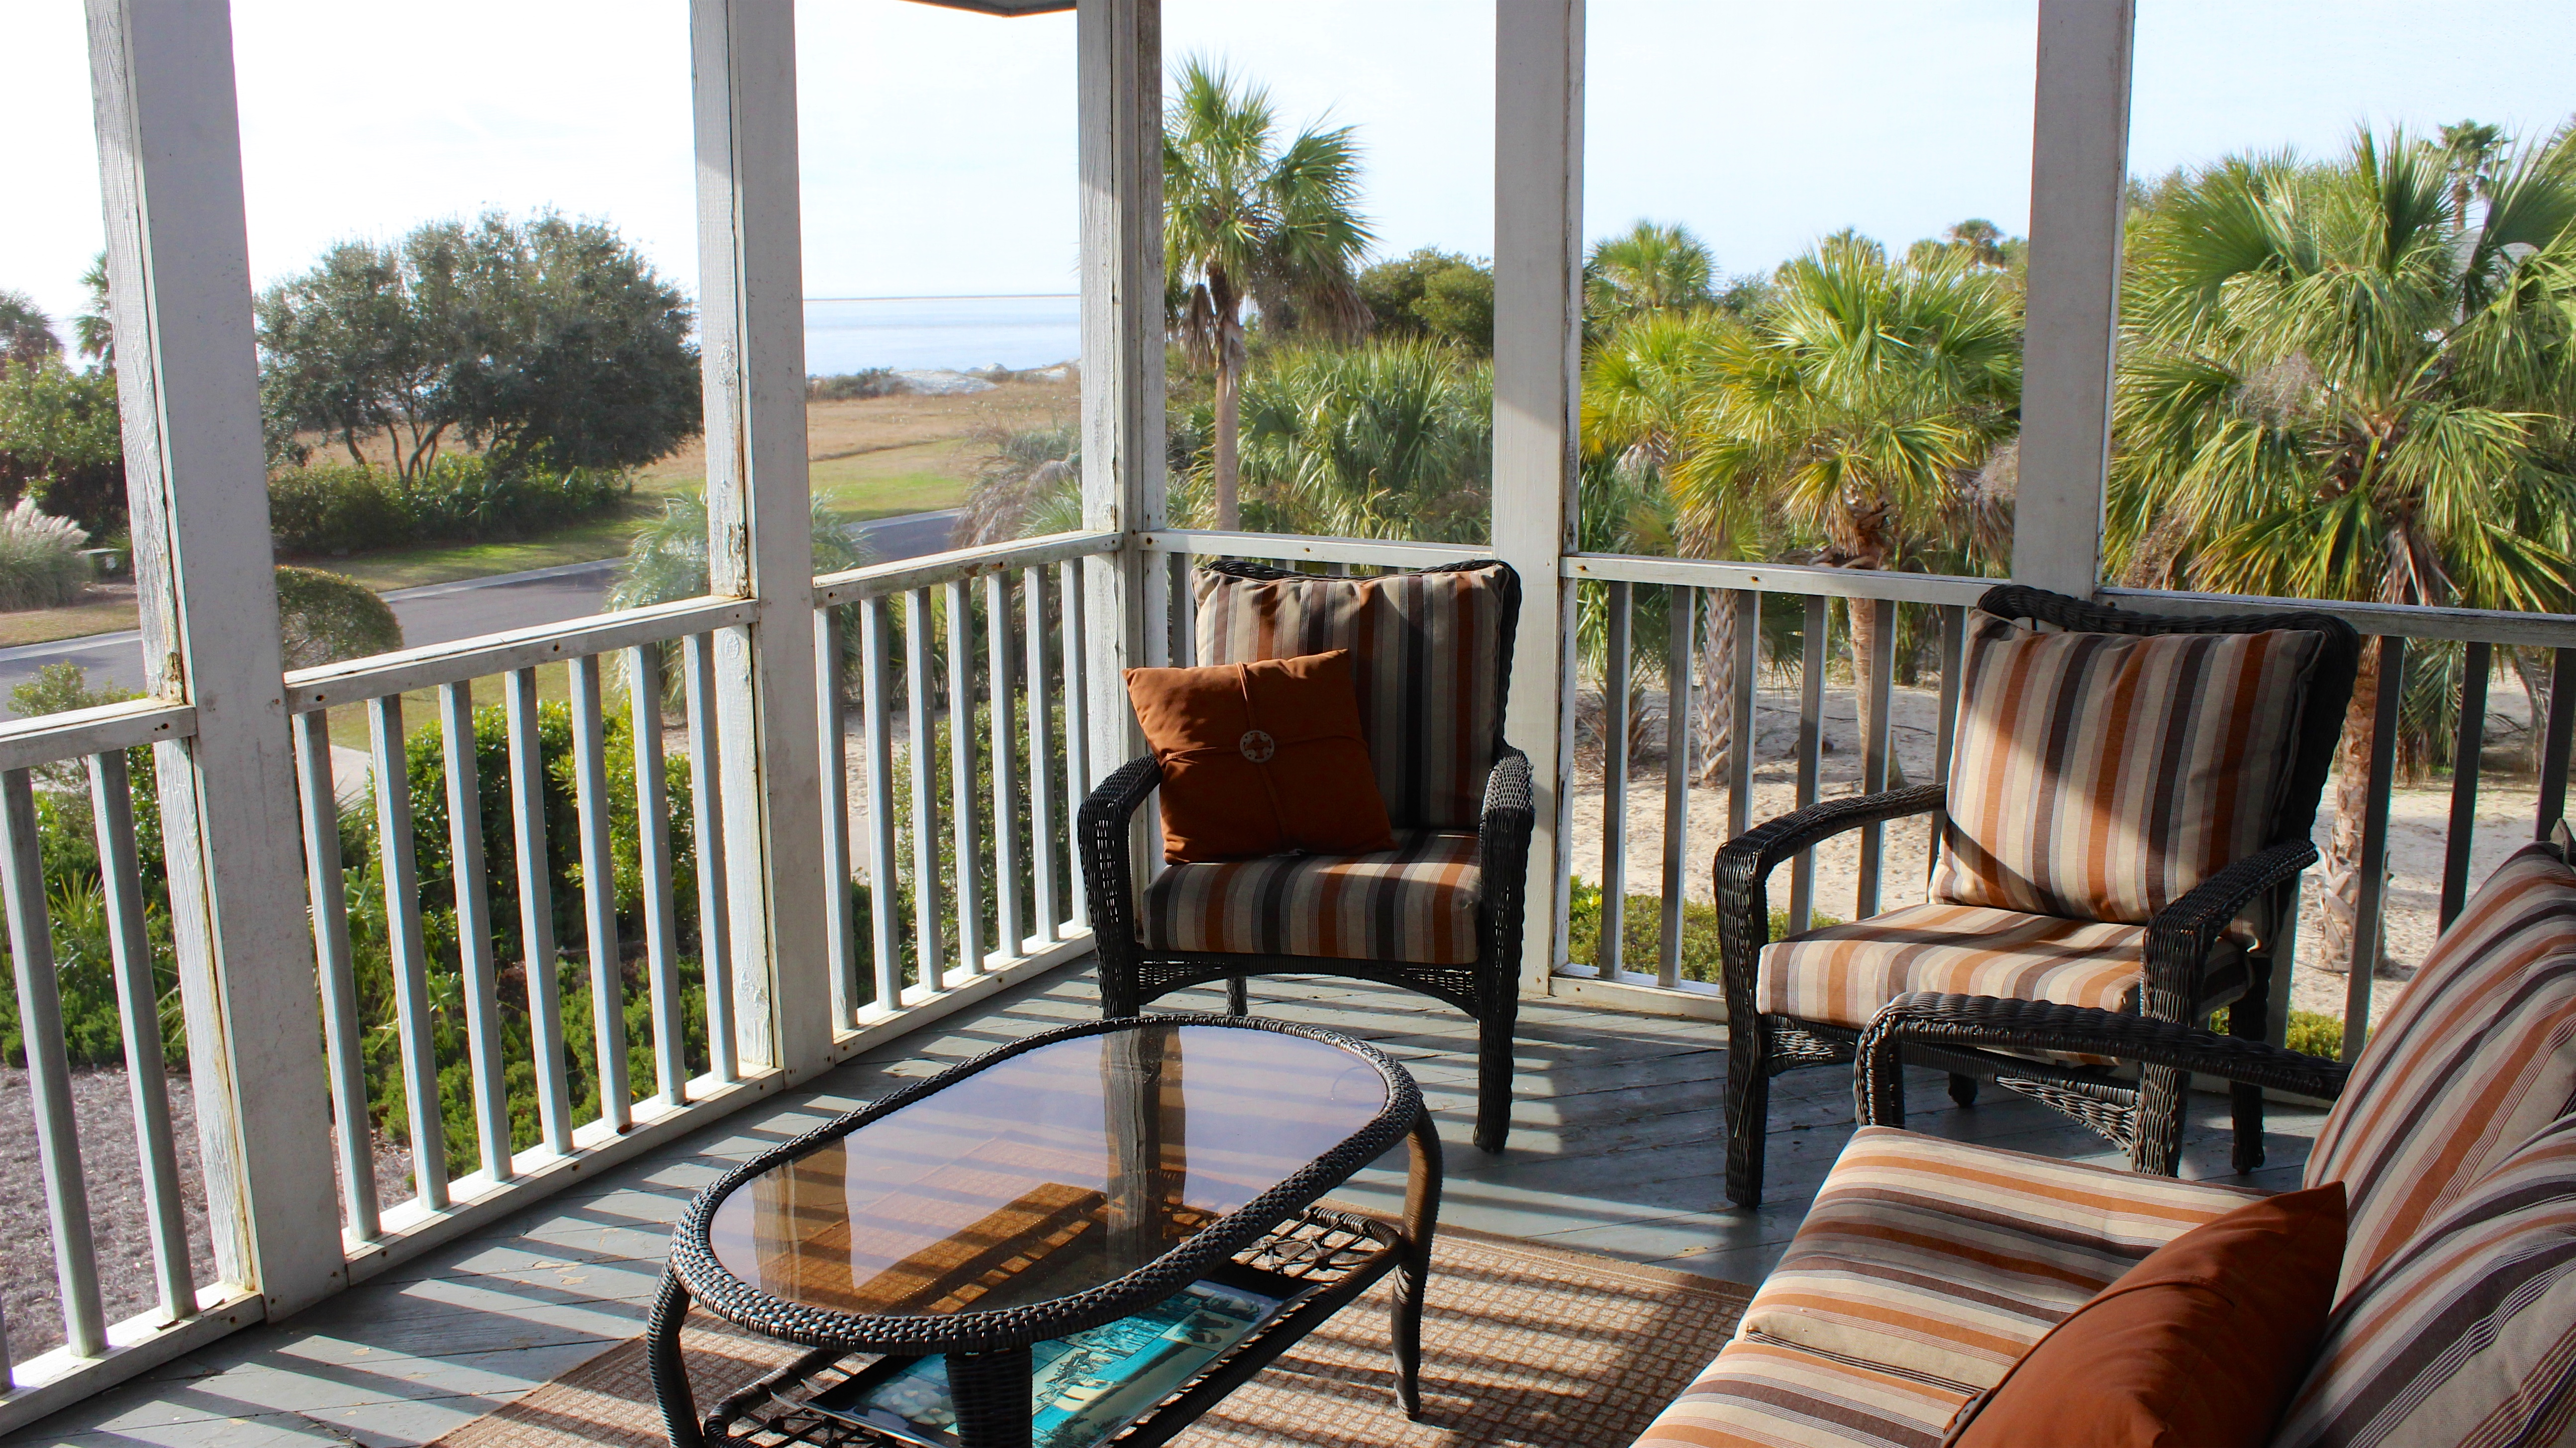 Sliding doors lead to a screened porch with ocean views.